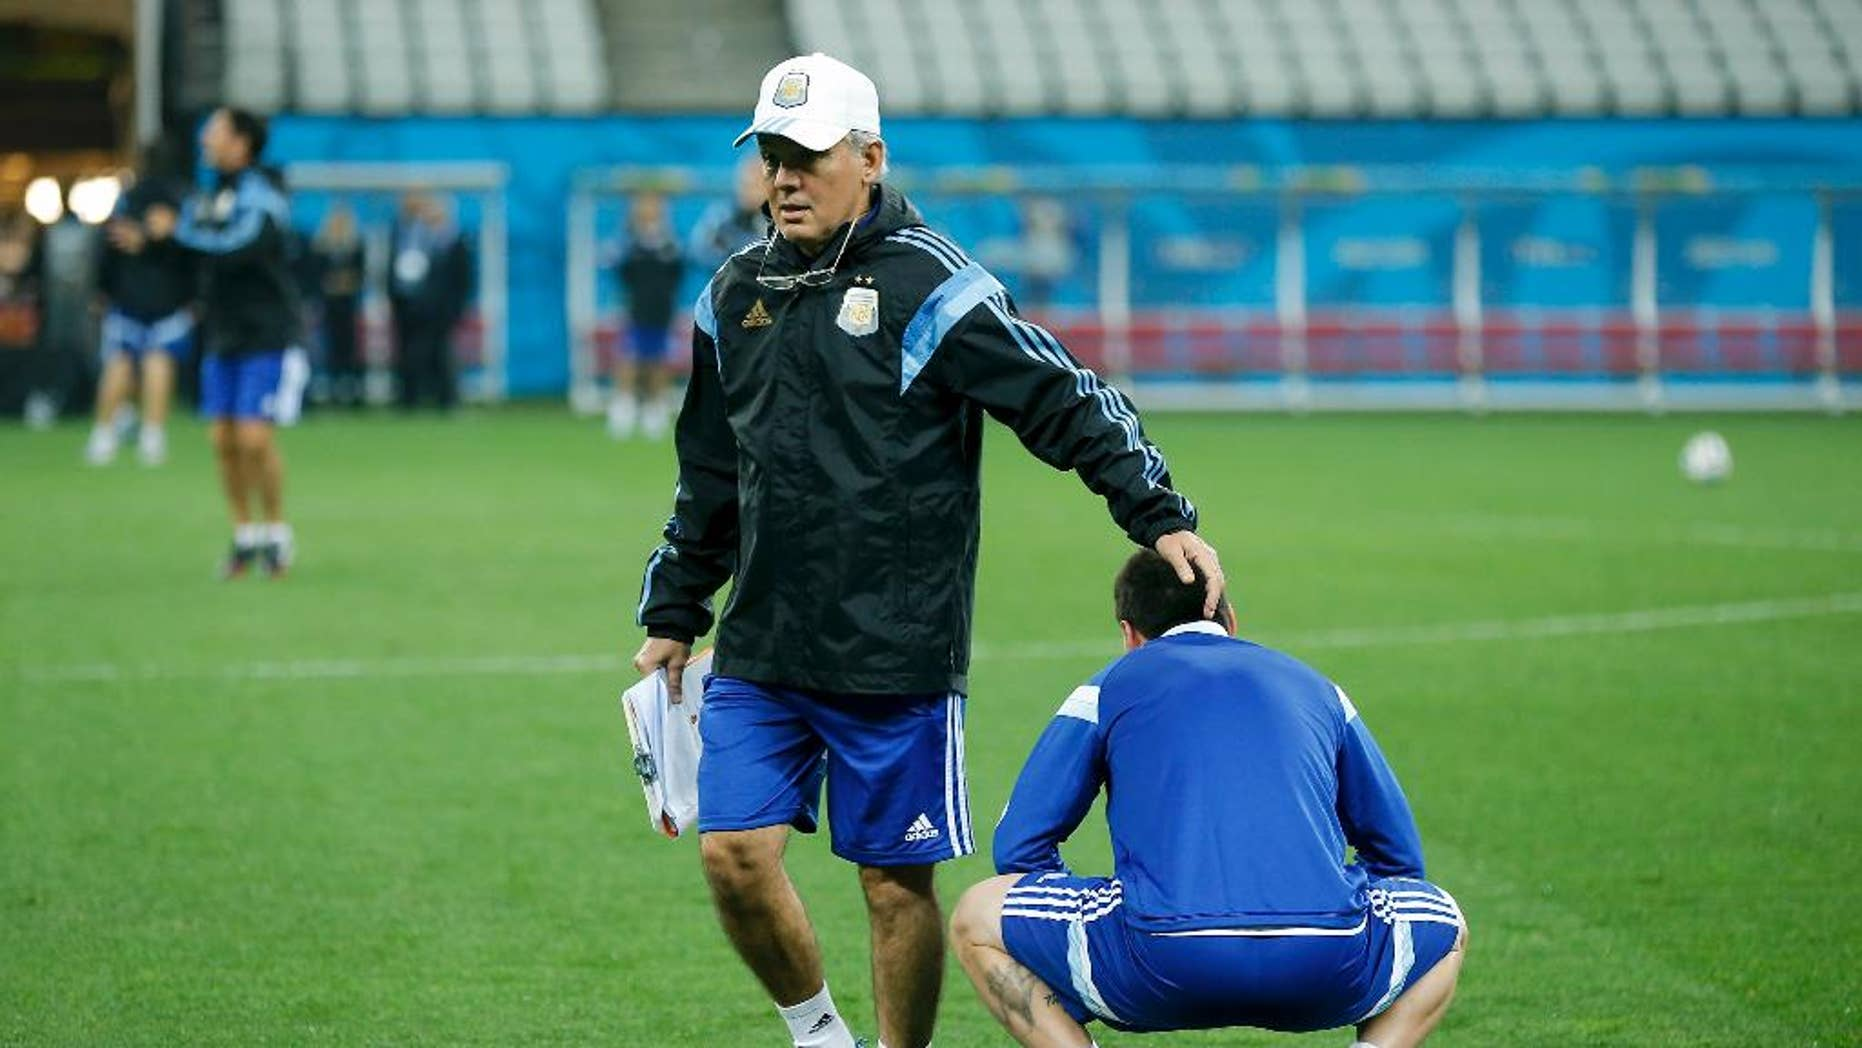 Argentina's head coach Alejandro Sabella touches the head of Argentina's Lionel Messi during a training session one day before their World Cup semifinal soccer match against Netherlands at Itaquerao Stadium in Sao Paulo, Brazil, Tuesday, July 8, 2014. (AP Photo/Victor R. Caivano)